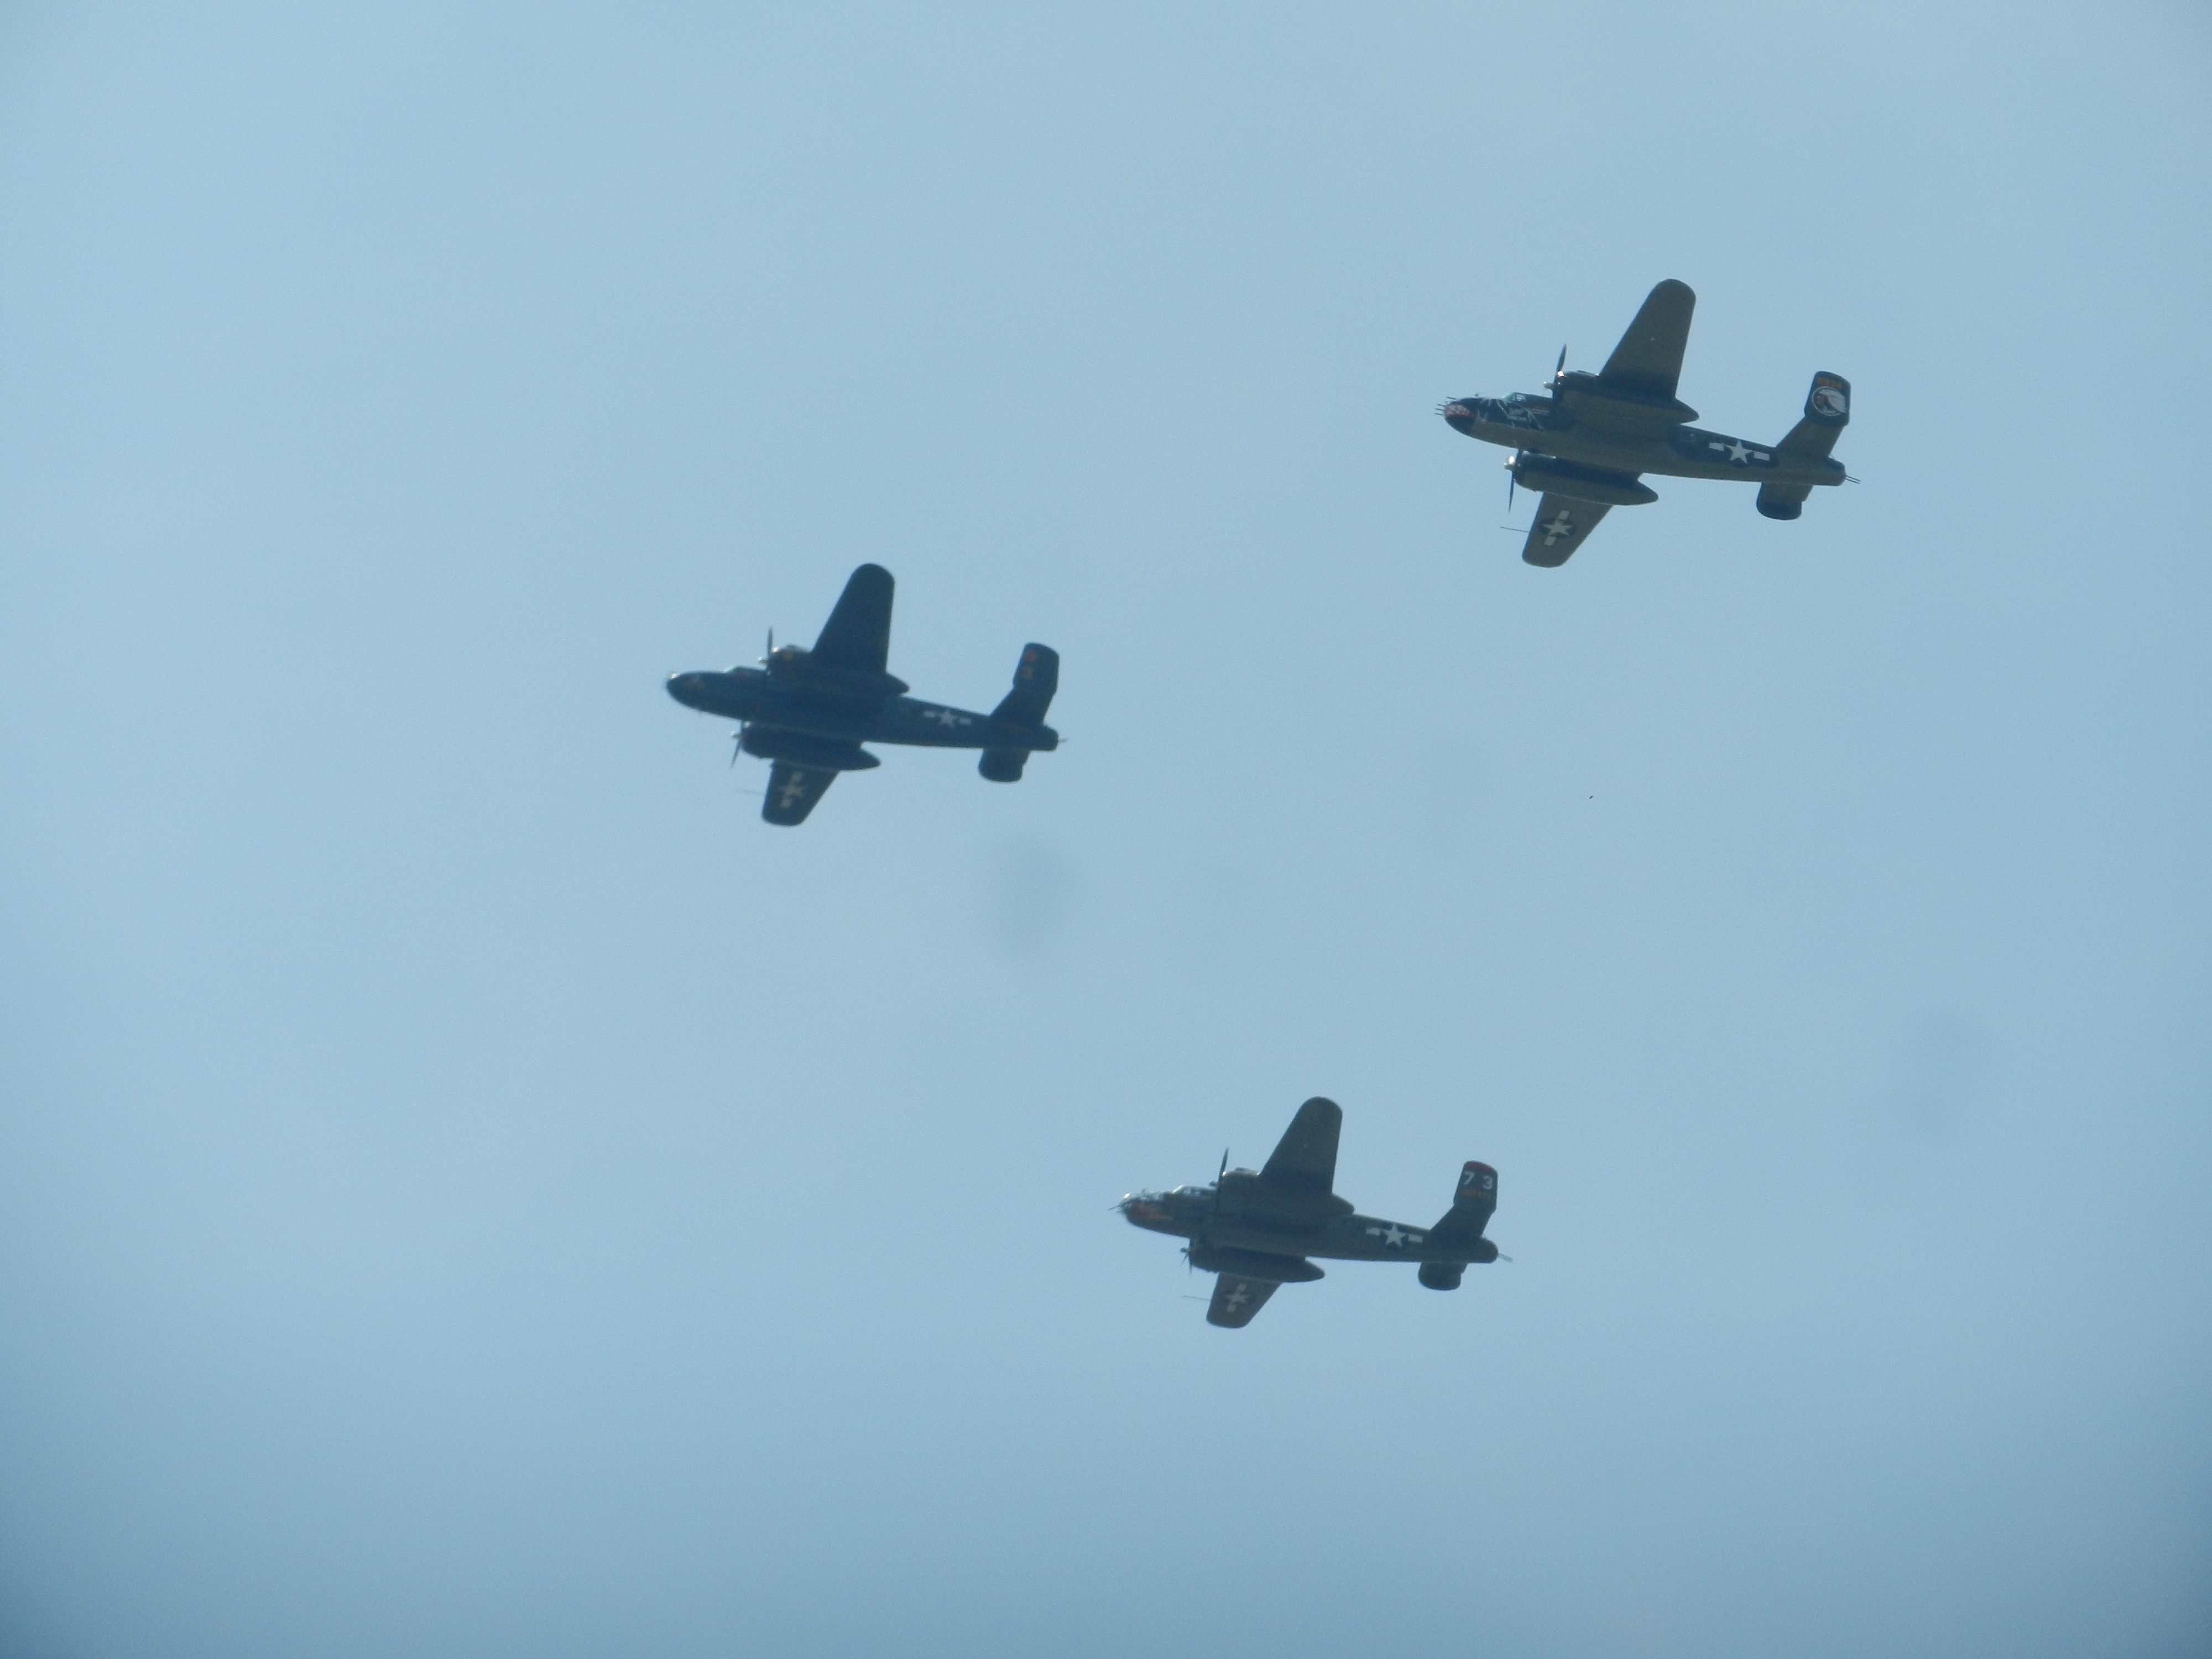 A formation of North American B-25 Mitchell twin engine medium bombers, famous for their effort in the Doolittle Raid.